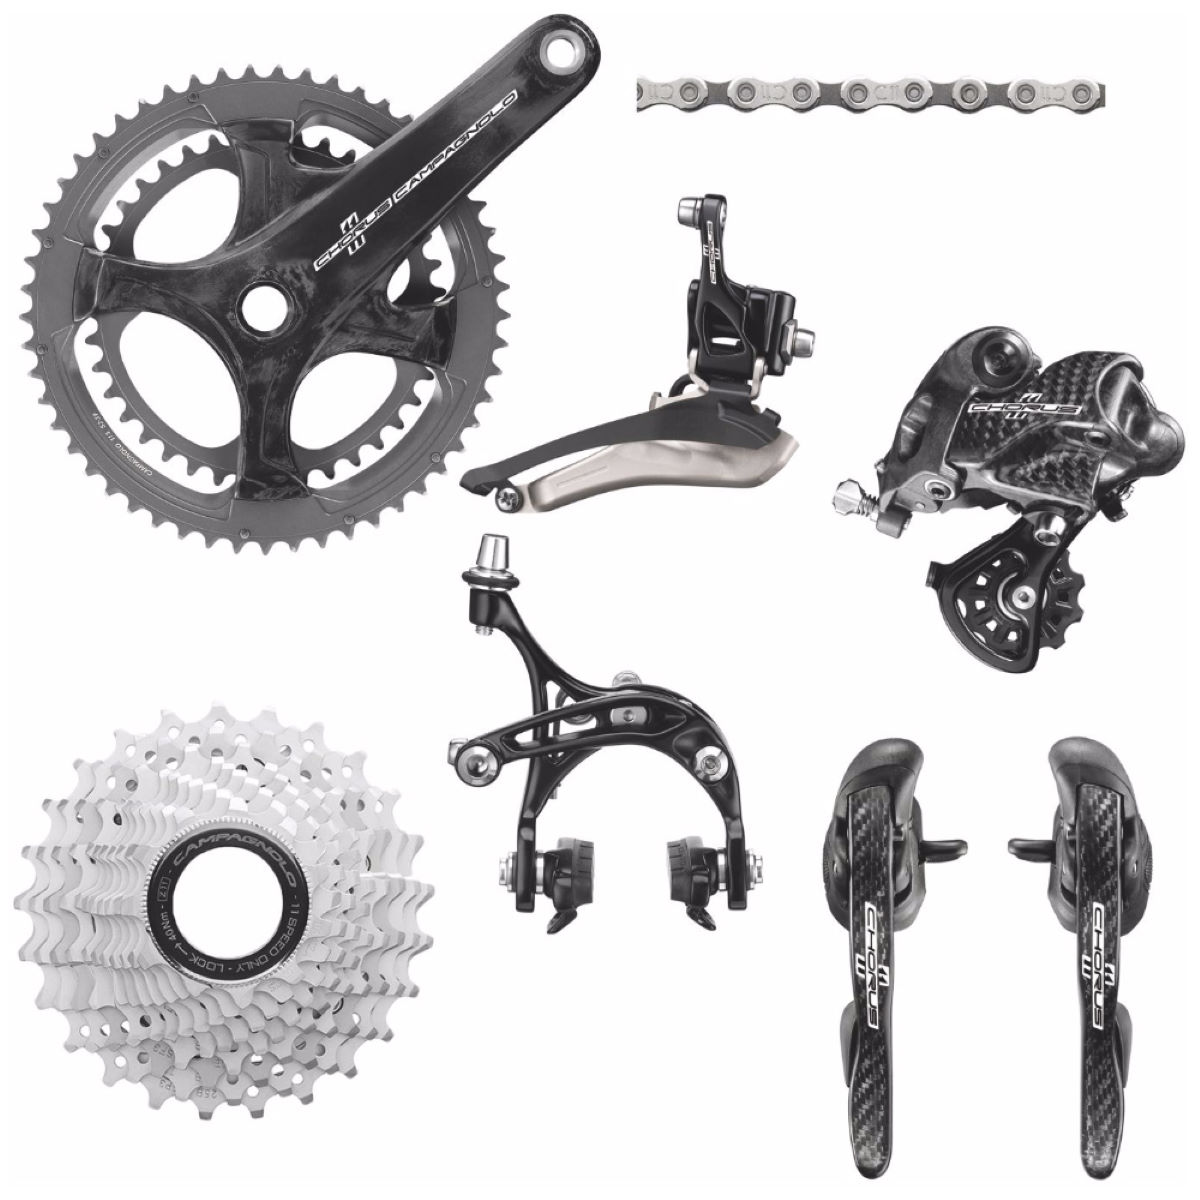 Campagnolo Chorus 11 Speed Groupset 2015 - 52/36 x 12-27T 170mm Noir Groupes